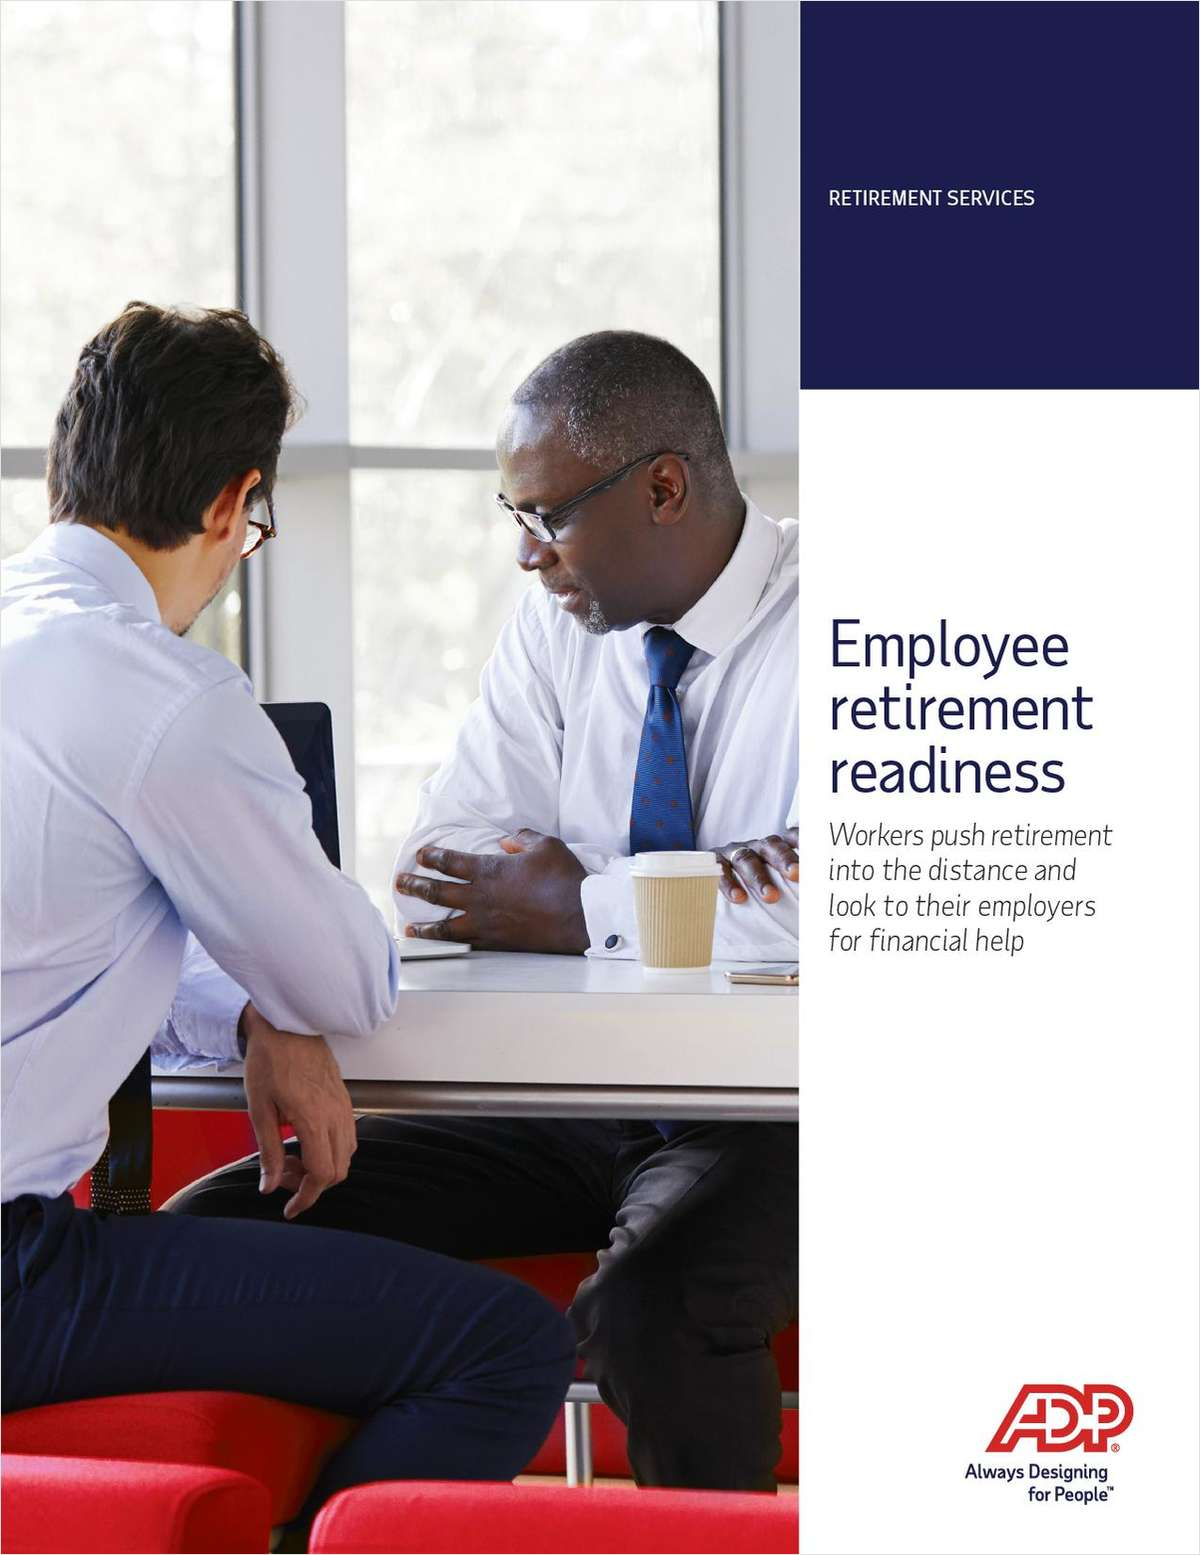 Employee Retirement Readiness: Workers Push Retirement Into the Distance and Look To Their Employers for Financial Help